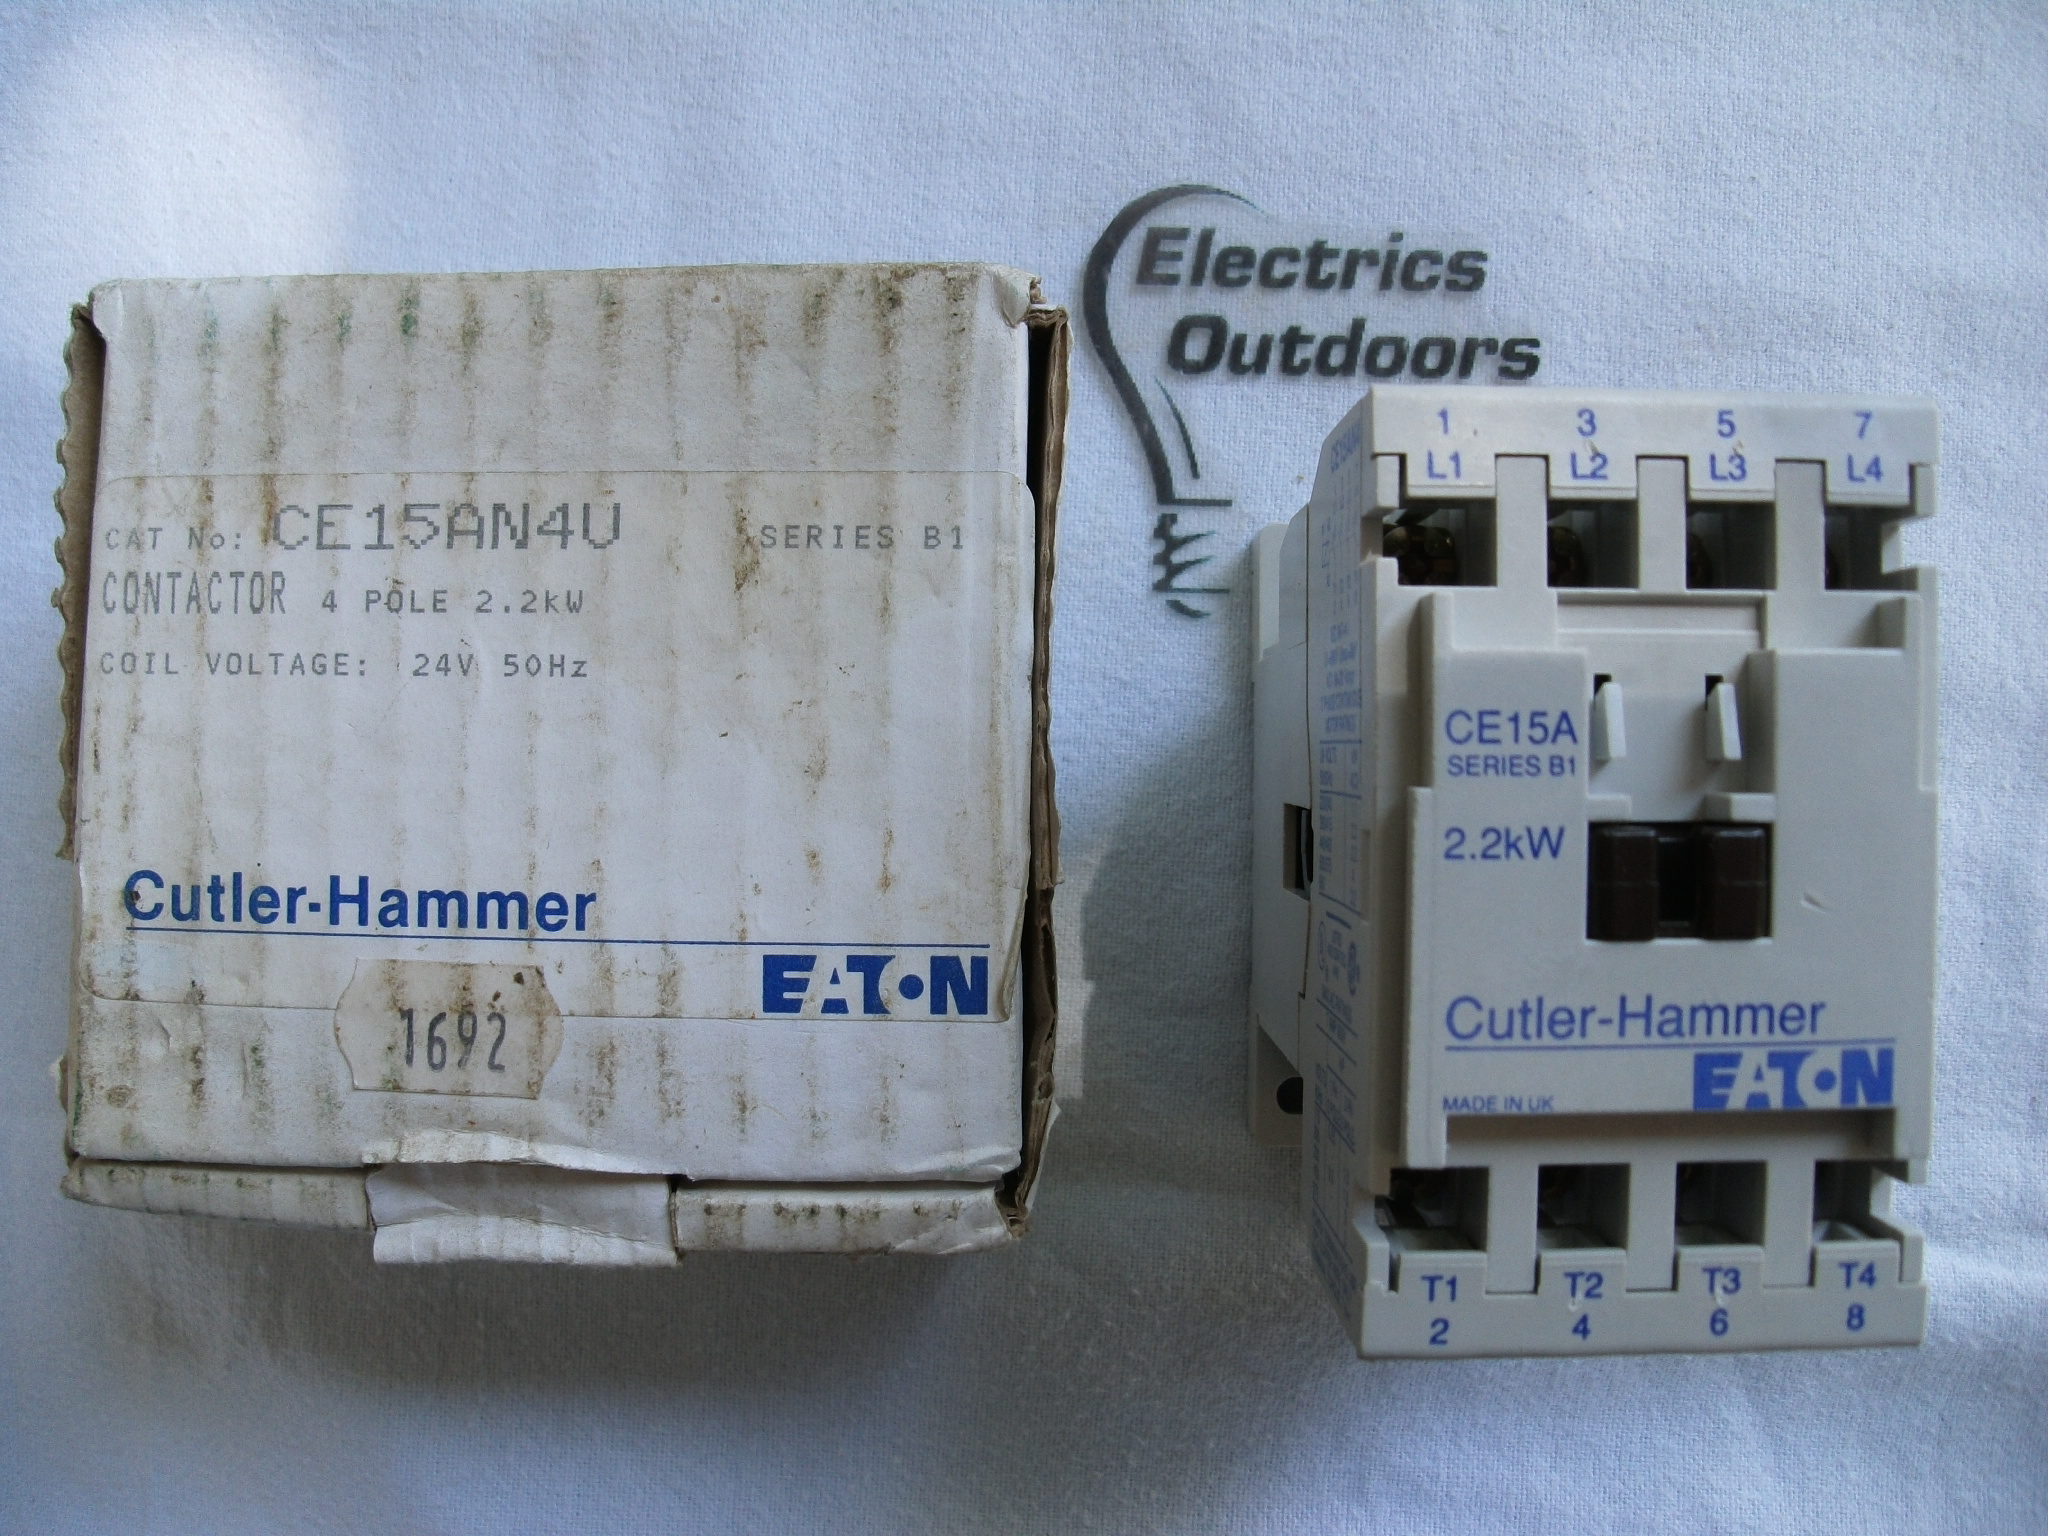 CUTLER-HAMMER 20 AMP CONTACTOR FOUR POLE 2.2KW COIL VOLTAGE 24V 50 HZ CE15AN4U 4